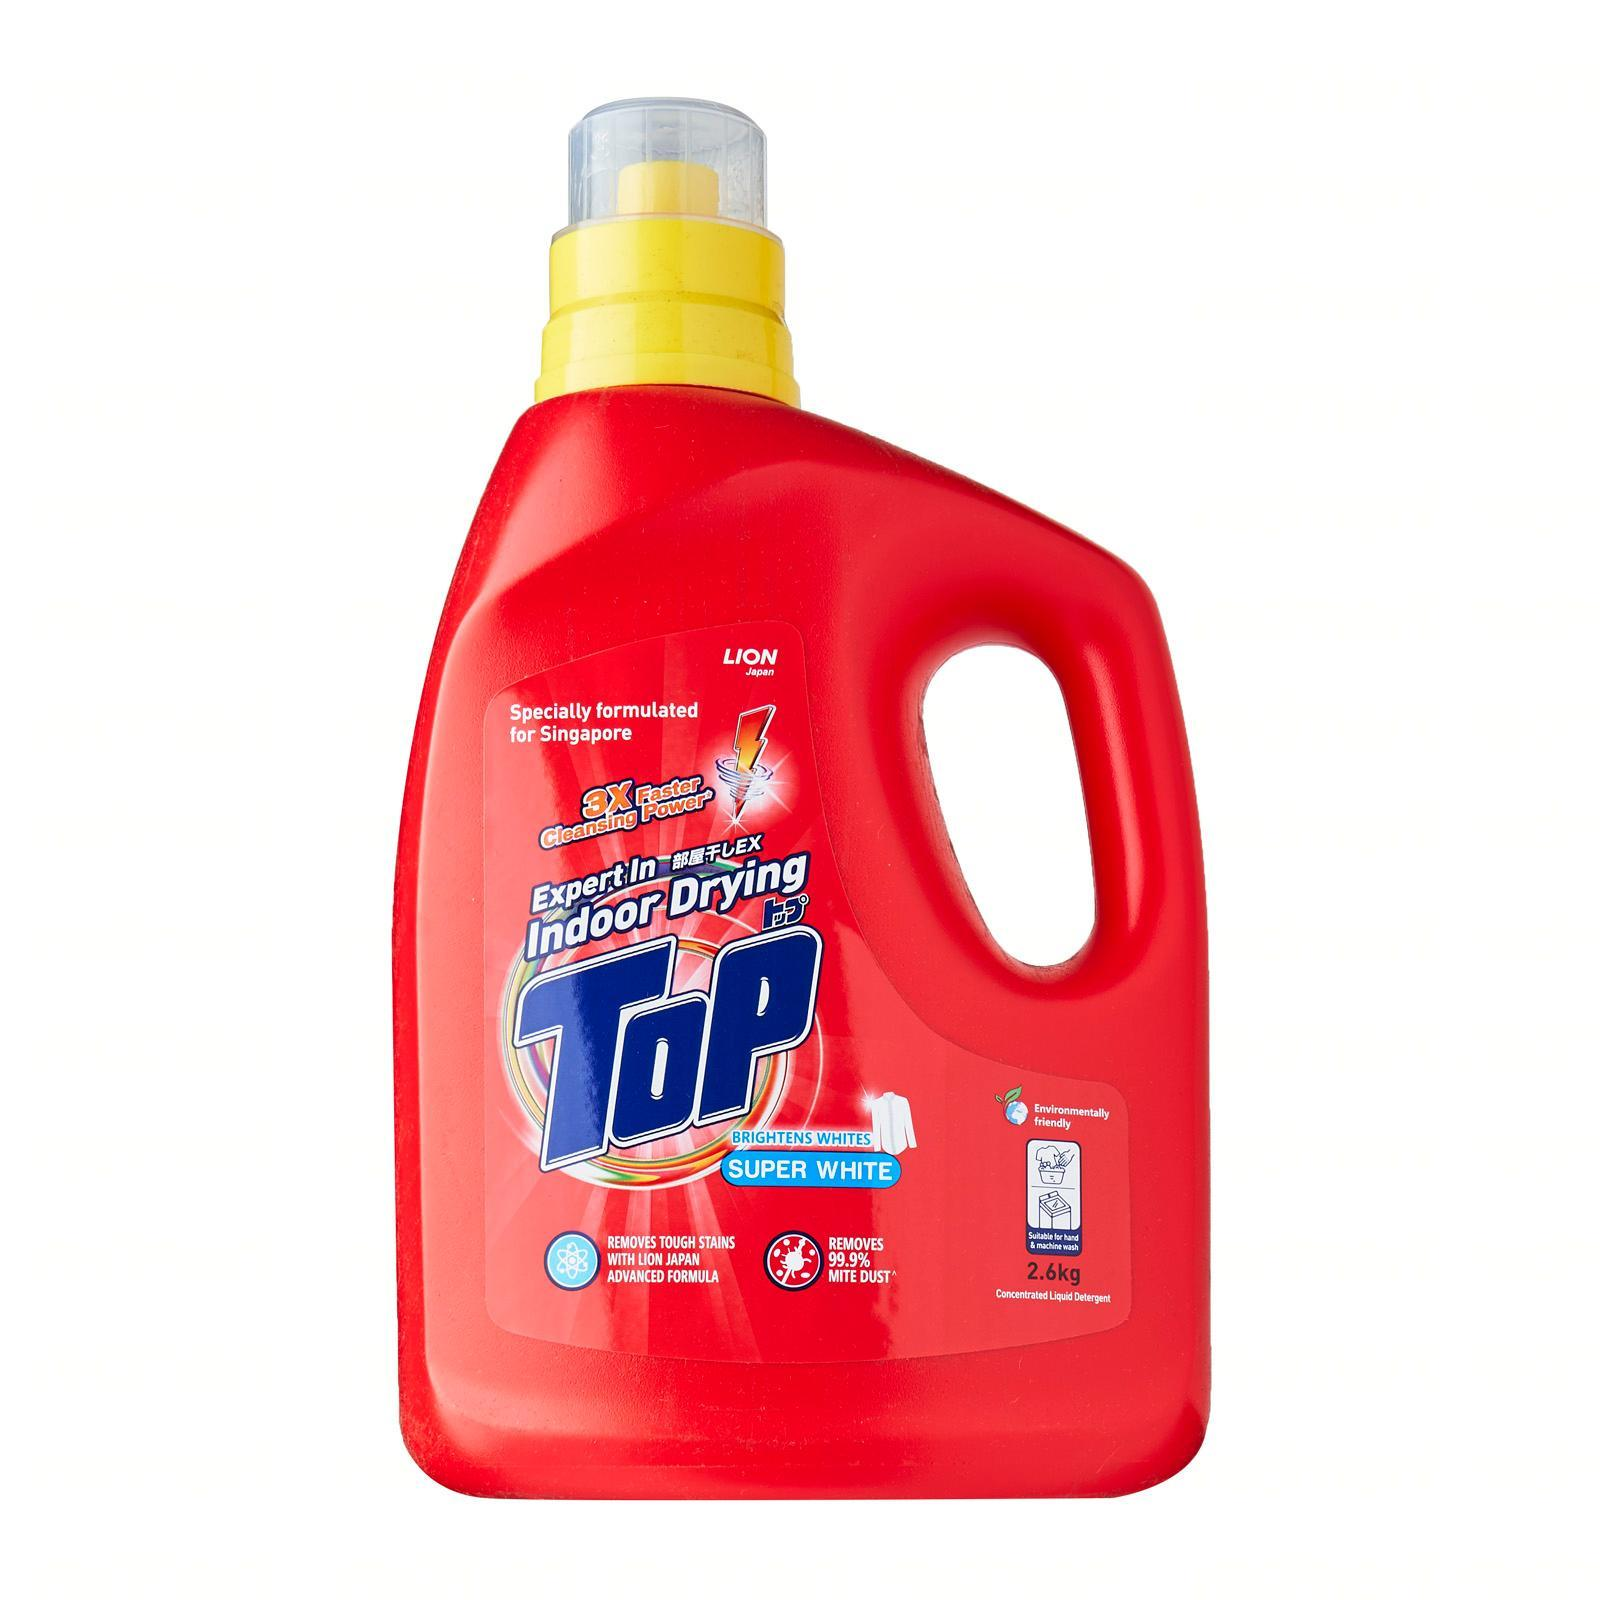 Top Super White Concentrated Liquid Detergent